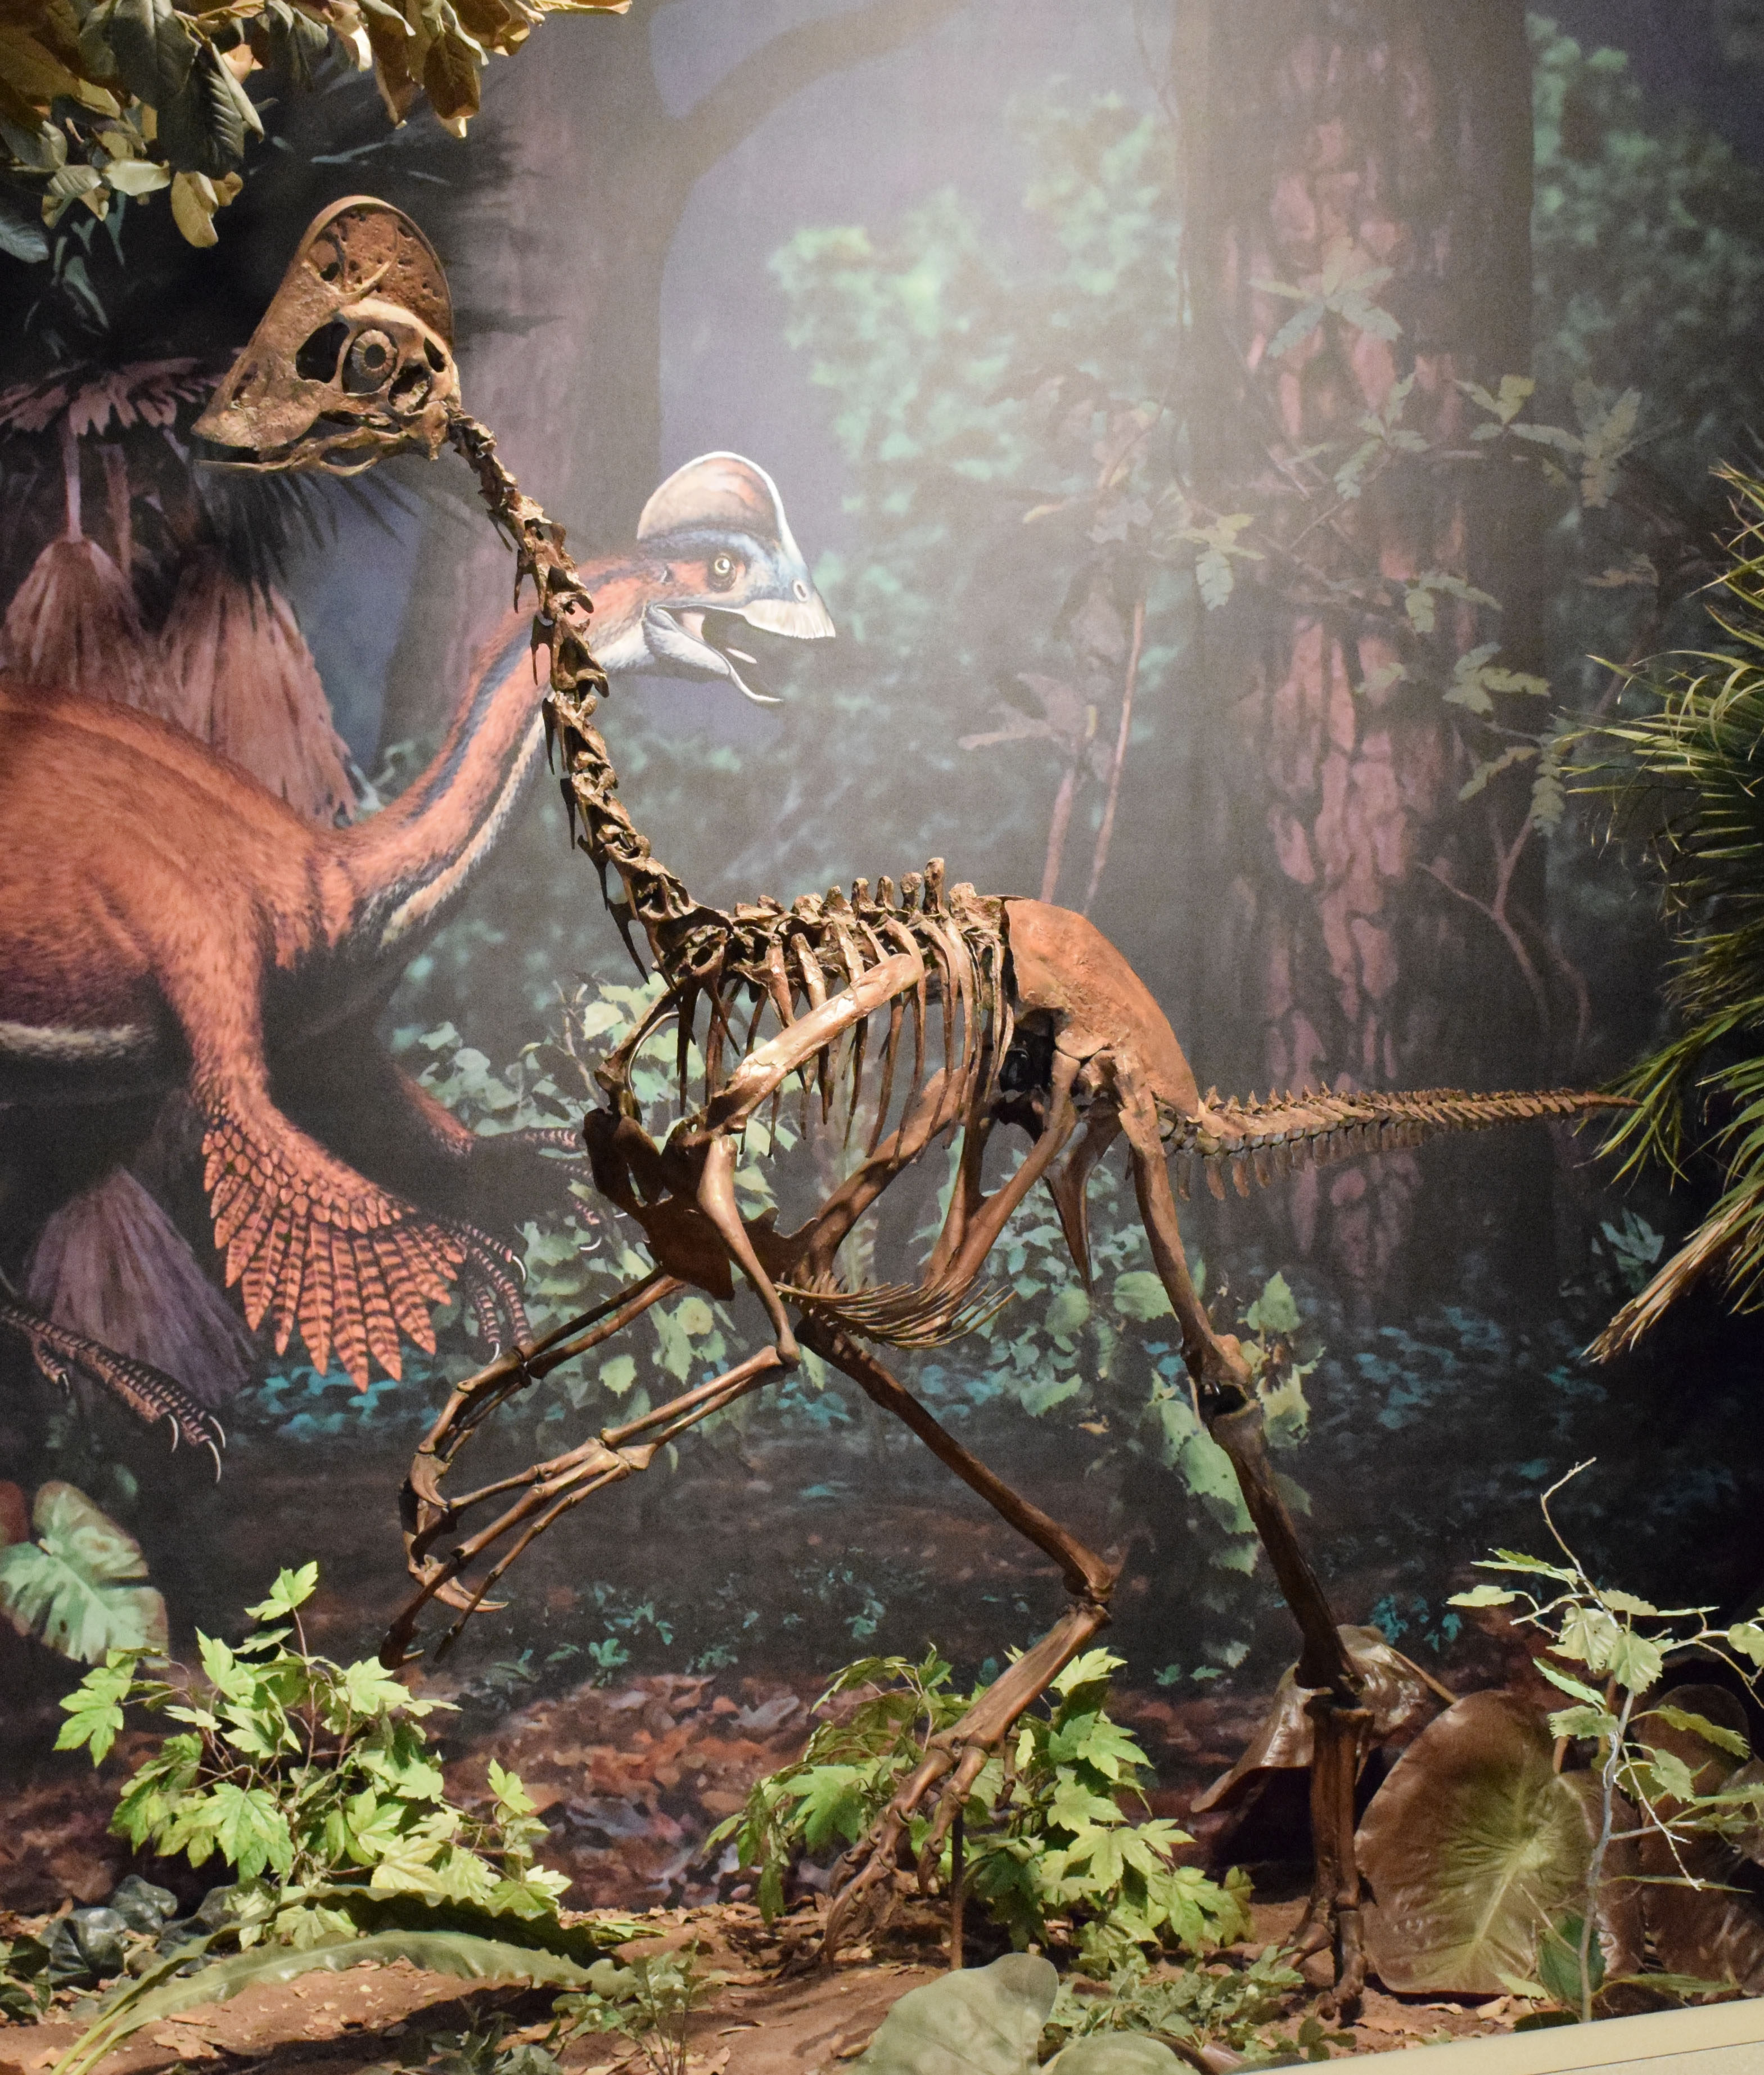 A Chicken From Hell Dinosaur Large Feathered Dinosaur